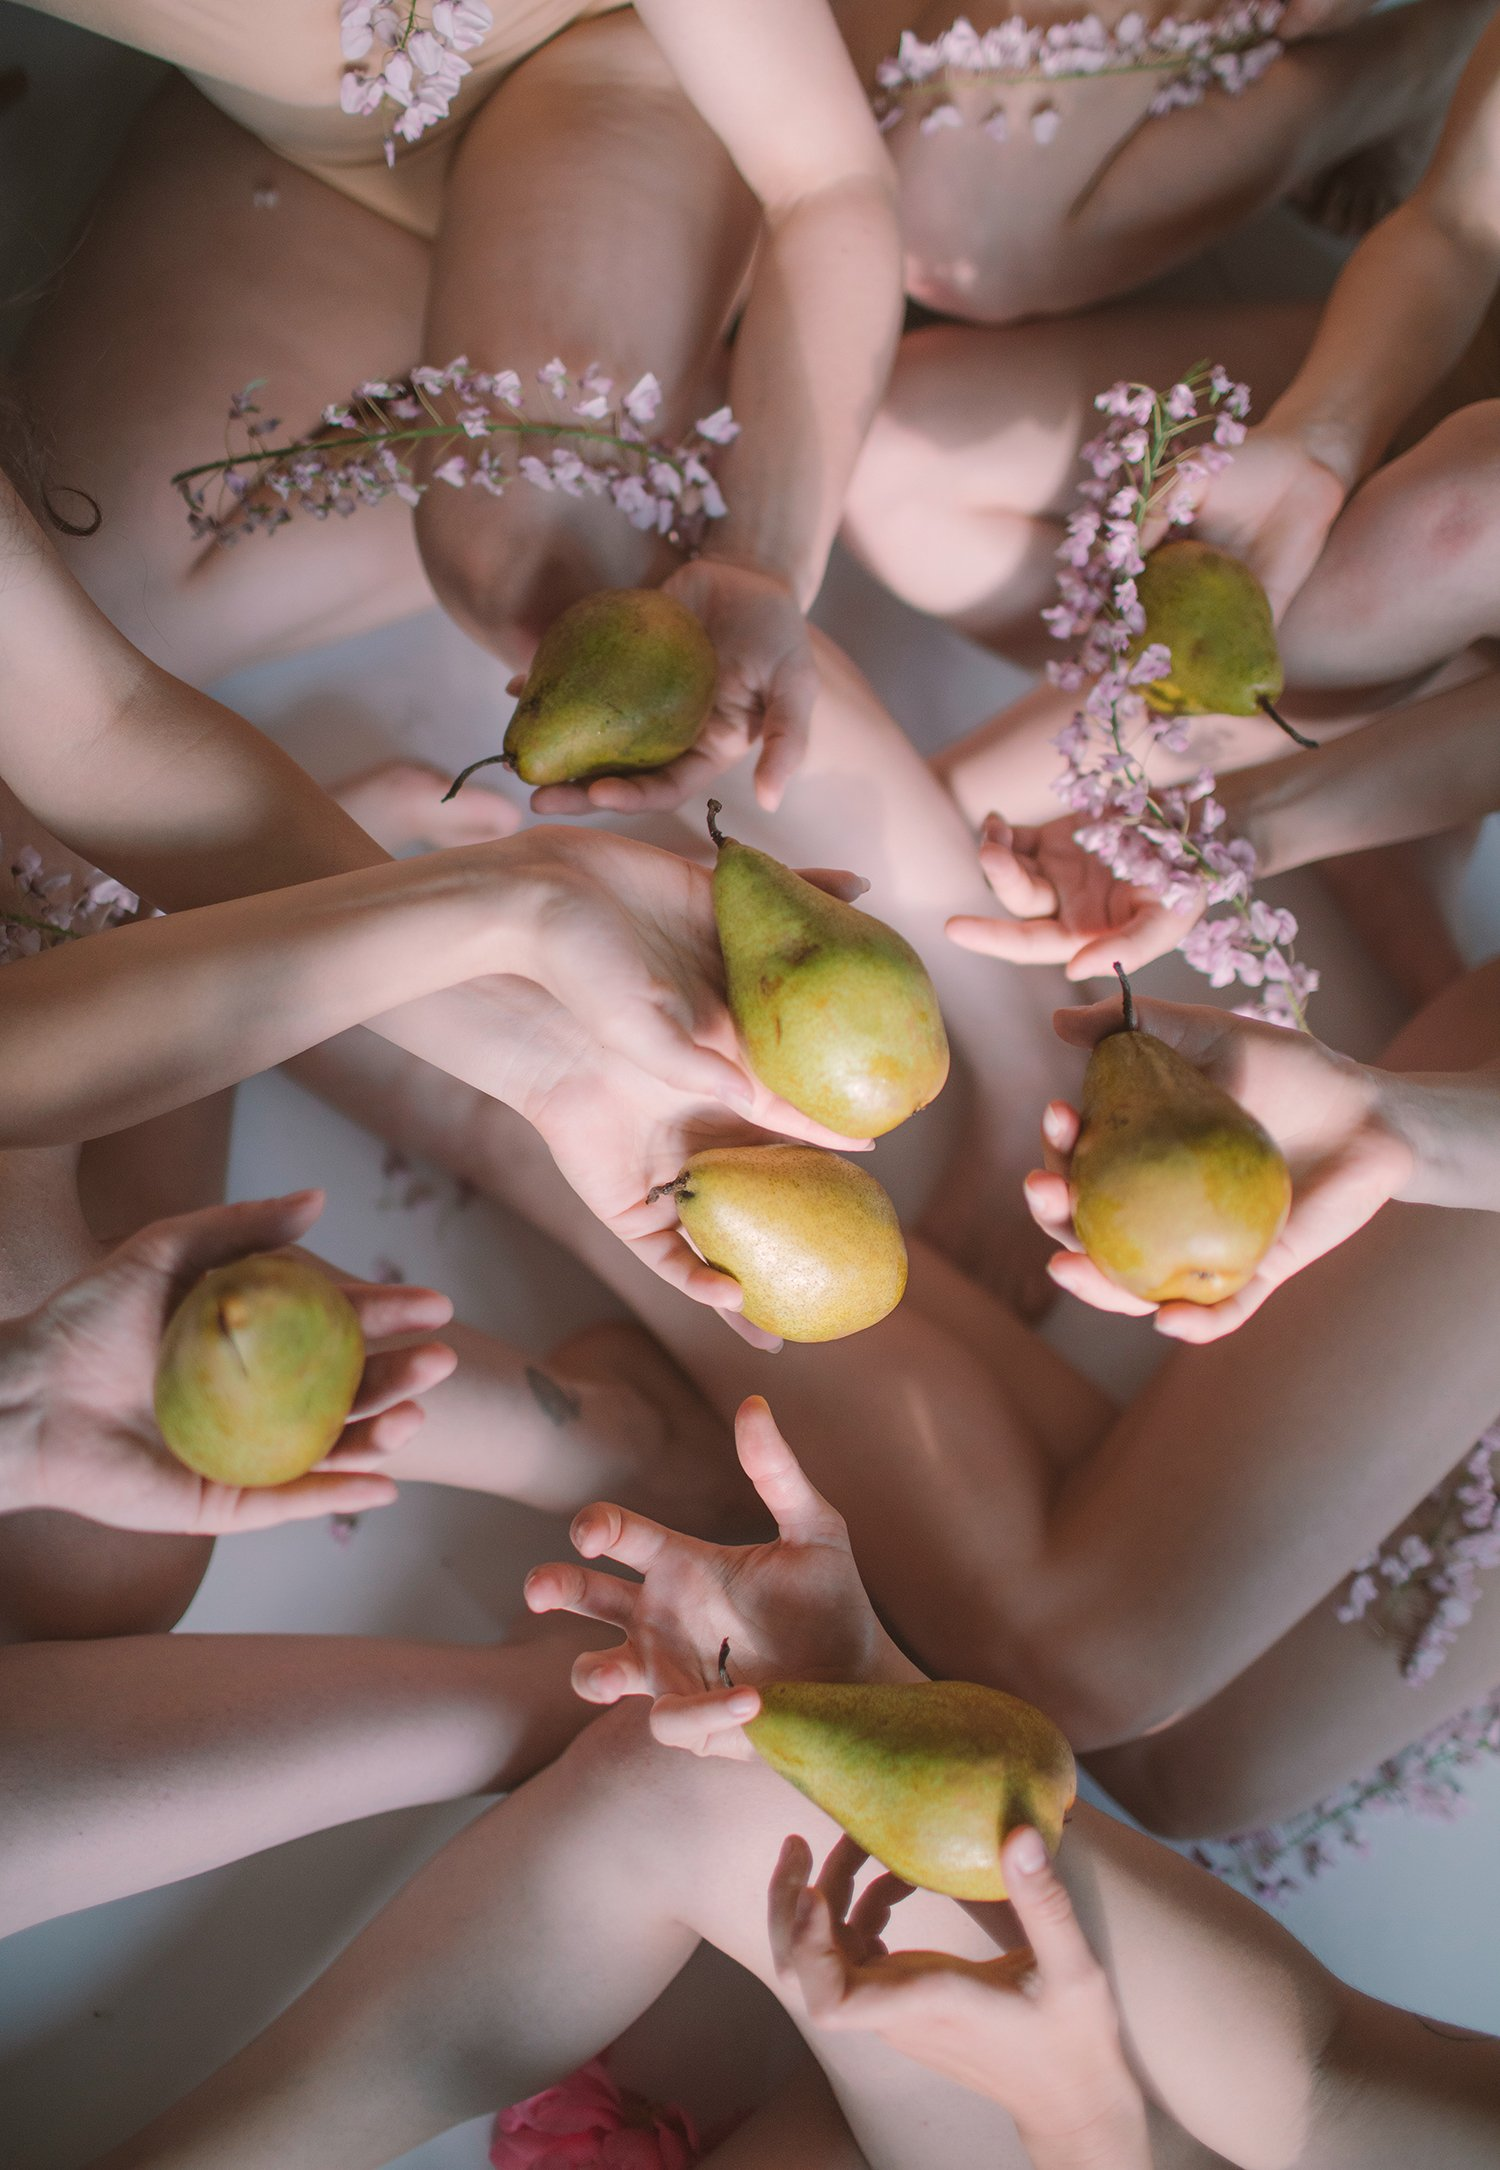 holding pears, photography